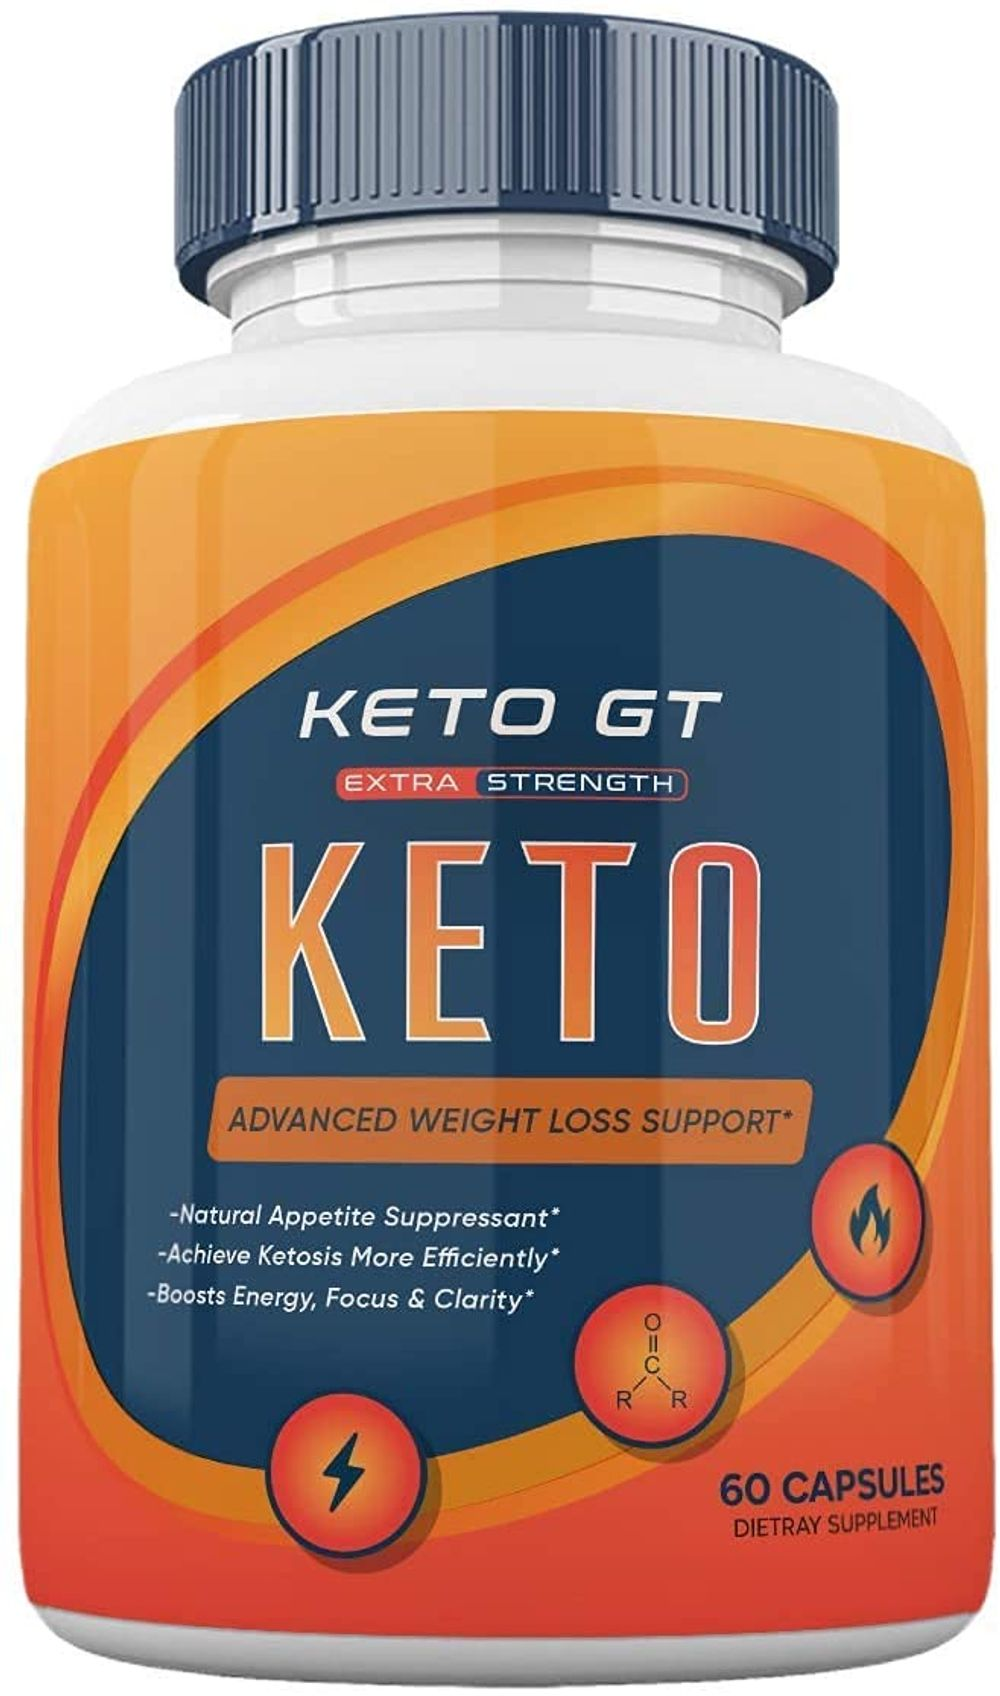 Keto GT Weight Manaement Pills Advanced Formula Pastillas dr Tablets 800mg BHB Supplement (60 Capsules)